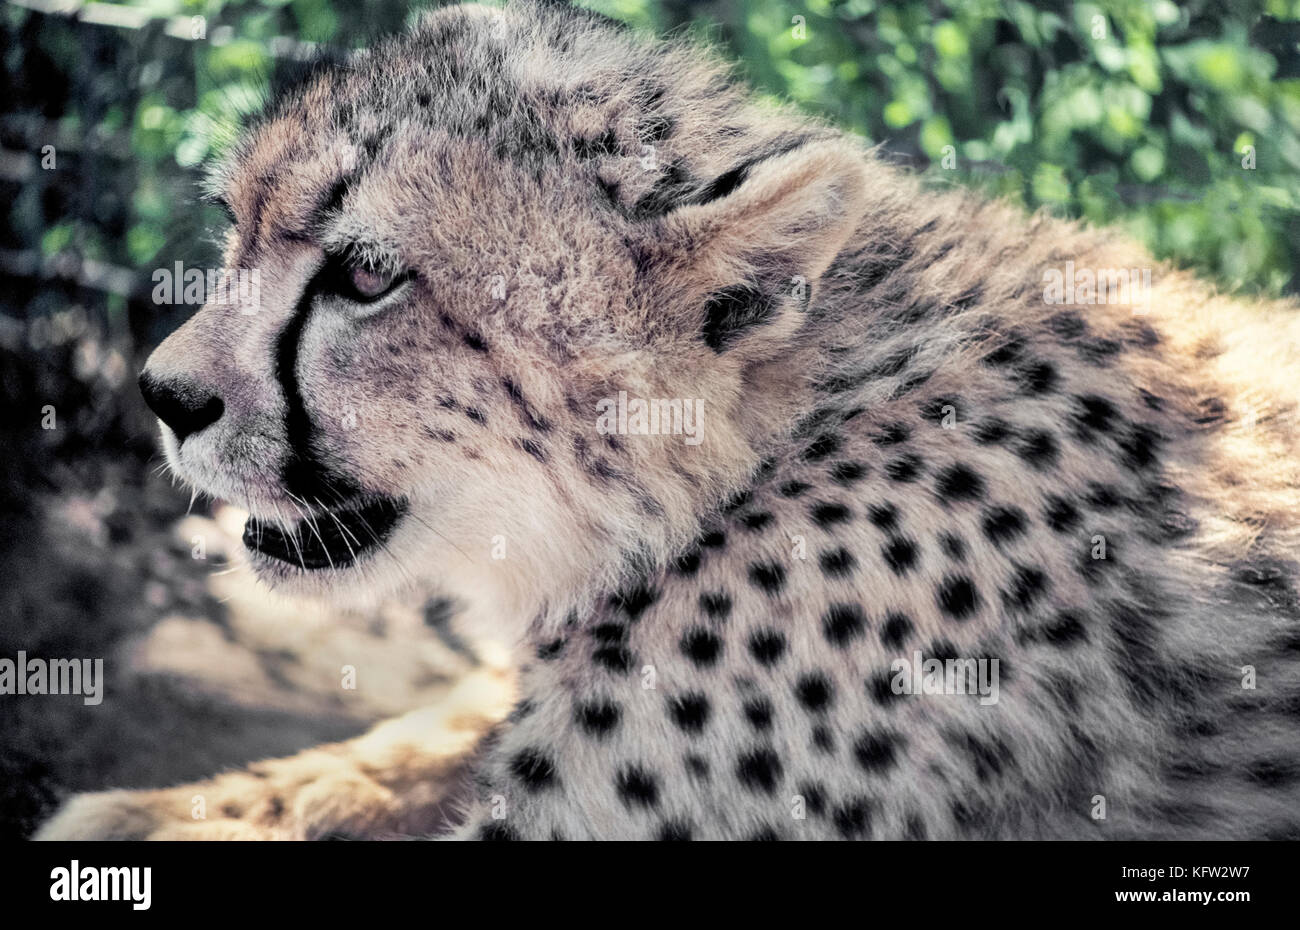 A close-up profile of the face of a young cheetah (Acinonyx jubatus) shows the animal's most characteristic marking, a black tear-like streak running down from each eye to the mouth. The stripes are thought to protect the eyes from the sun's glare. Another distinguishing feature are the solid black spots on a cheetah's coat that help camouflage the world's fastest land animal and Africa's most endangered big cat. Photographed in Zululand, South Africa. Stock Photo